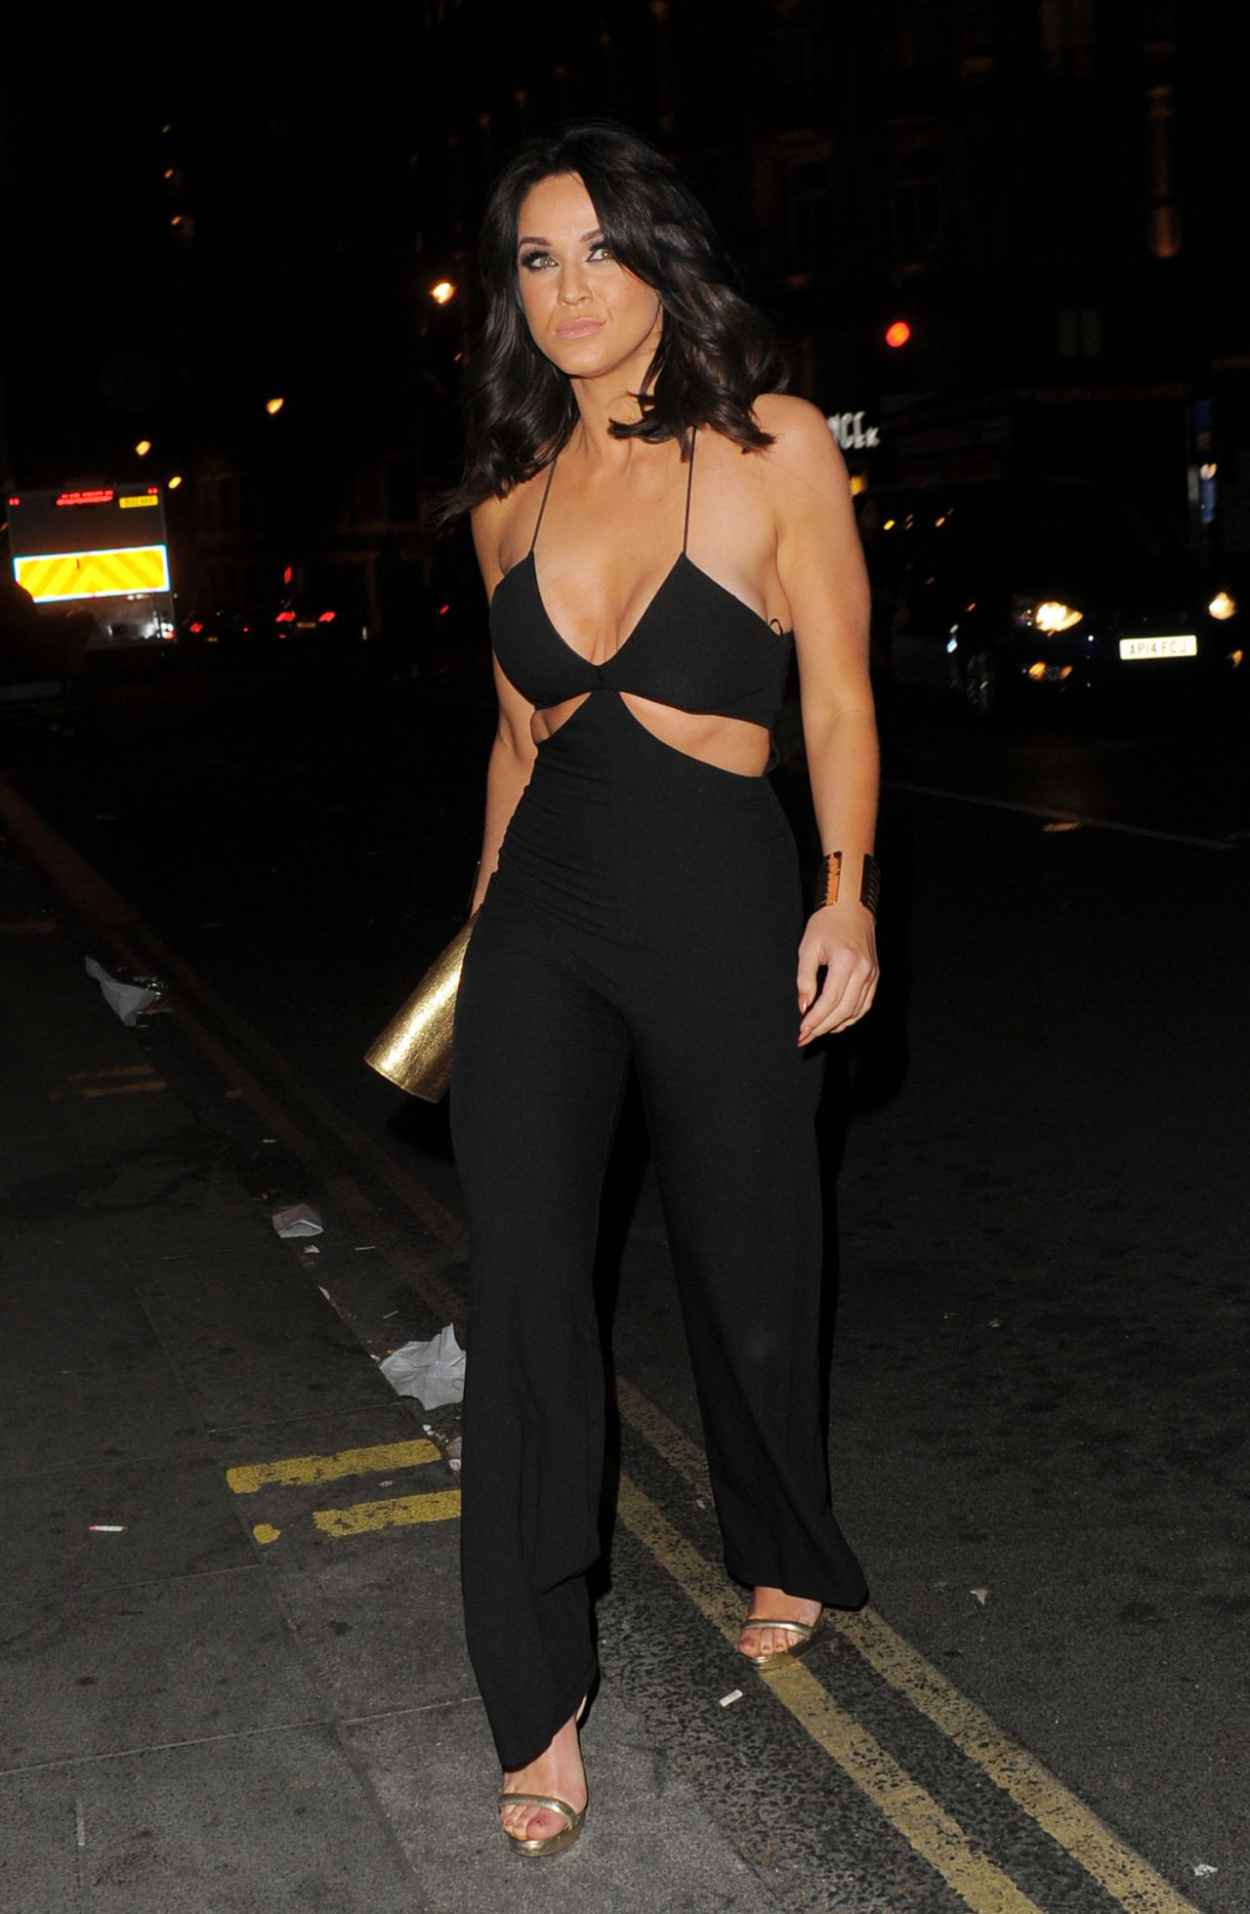 Vicky Pattison Night Out Style - London, April 2015-5